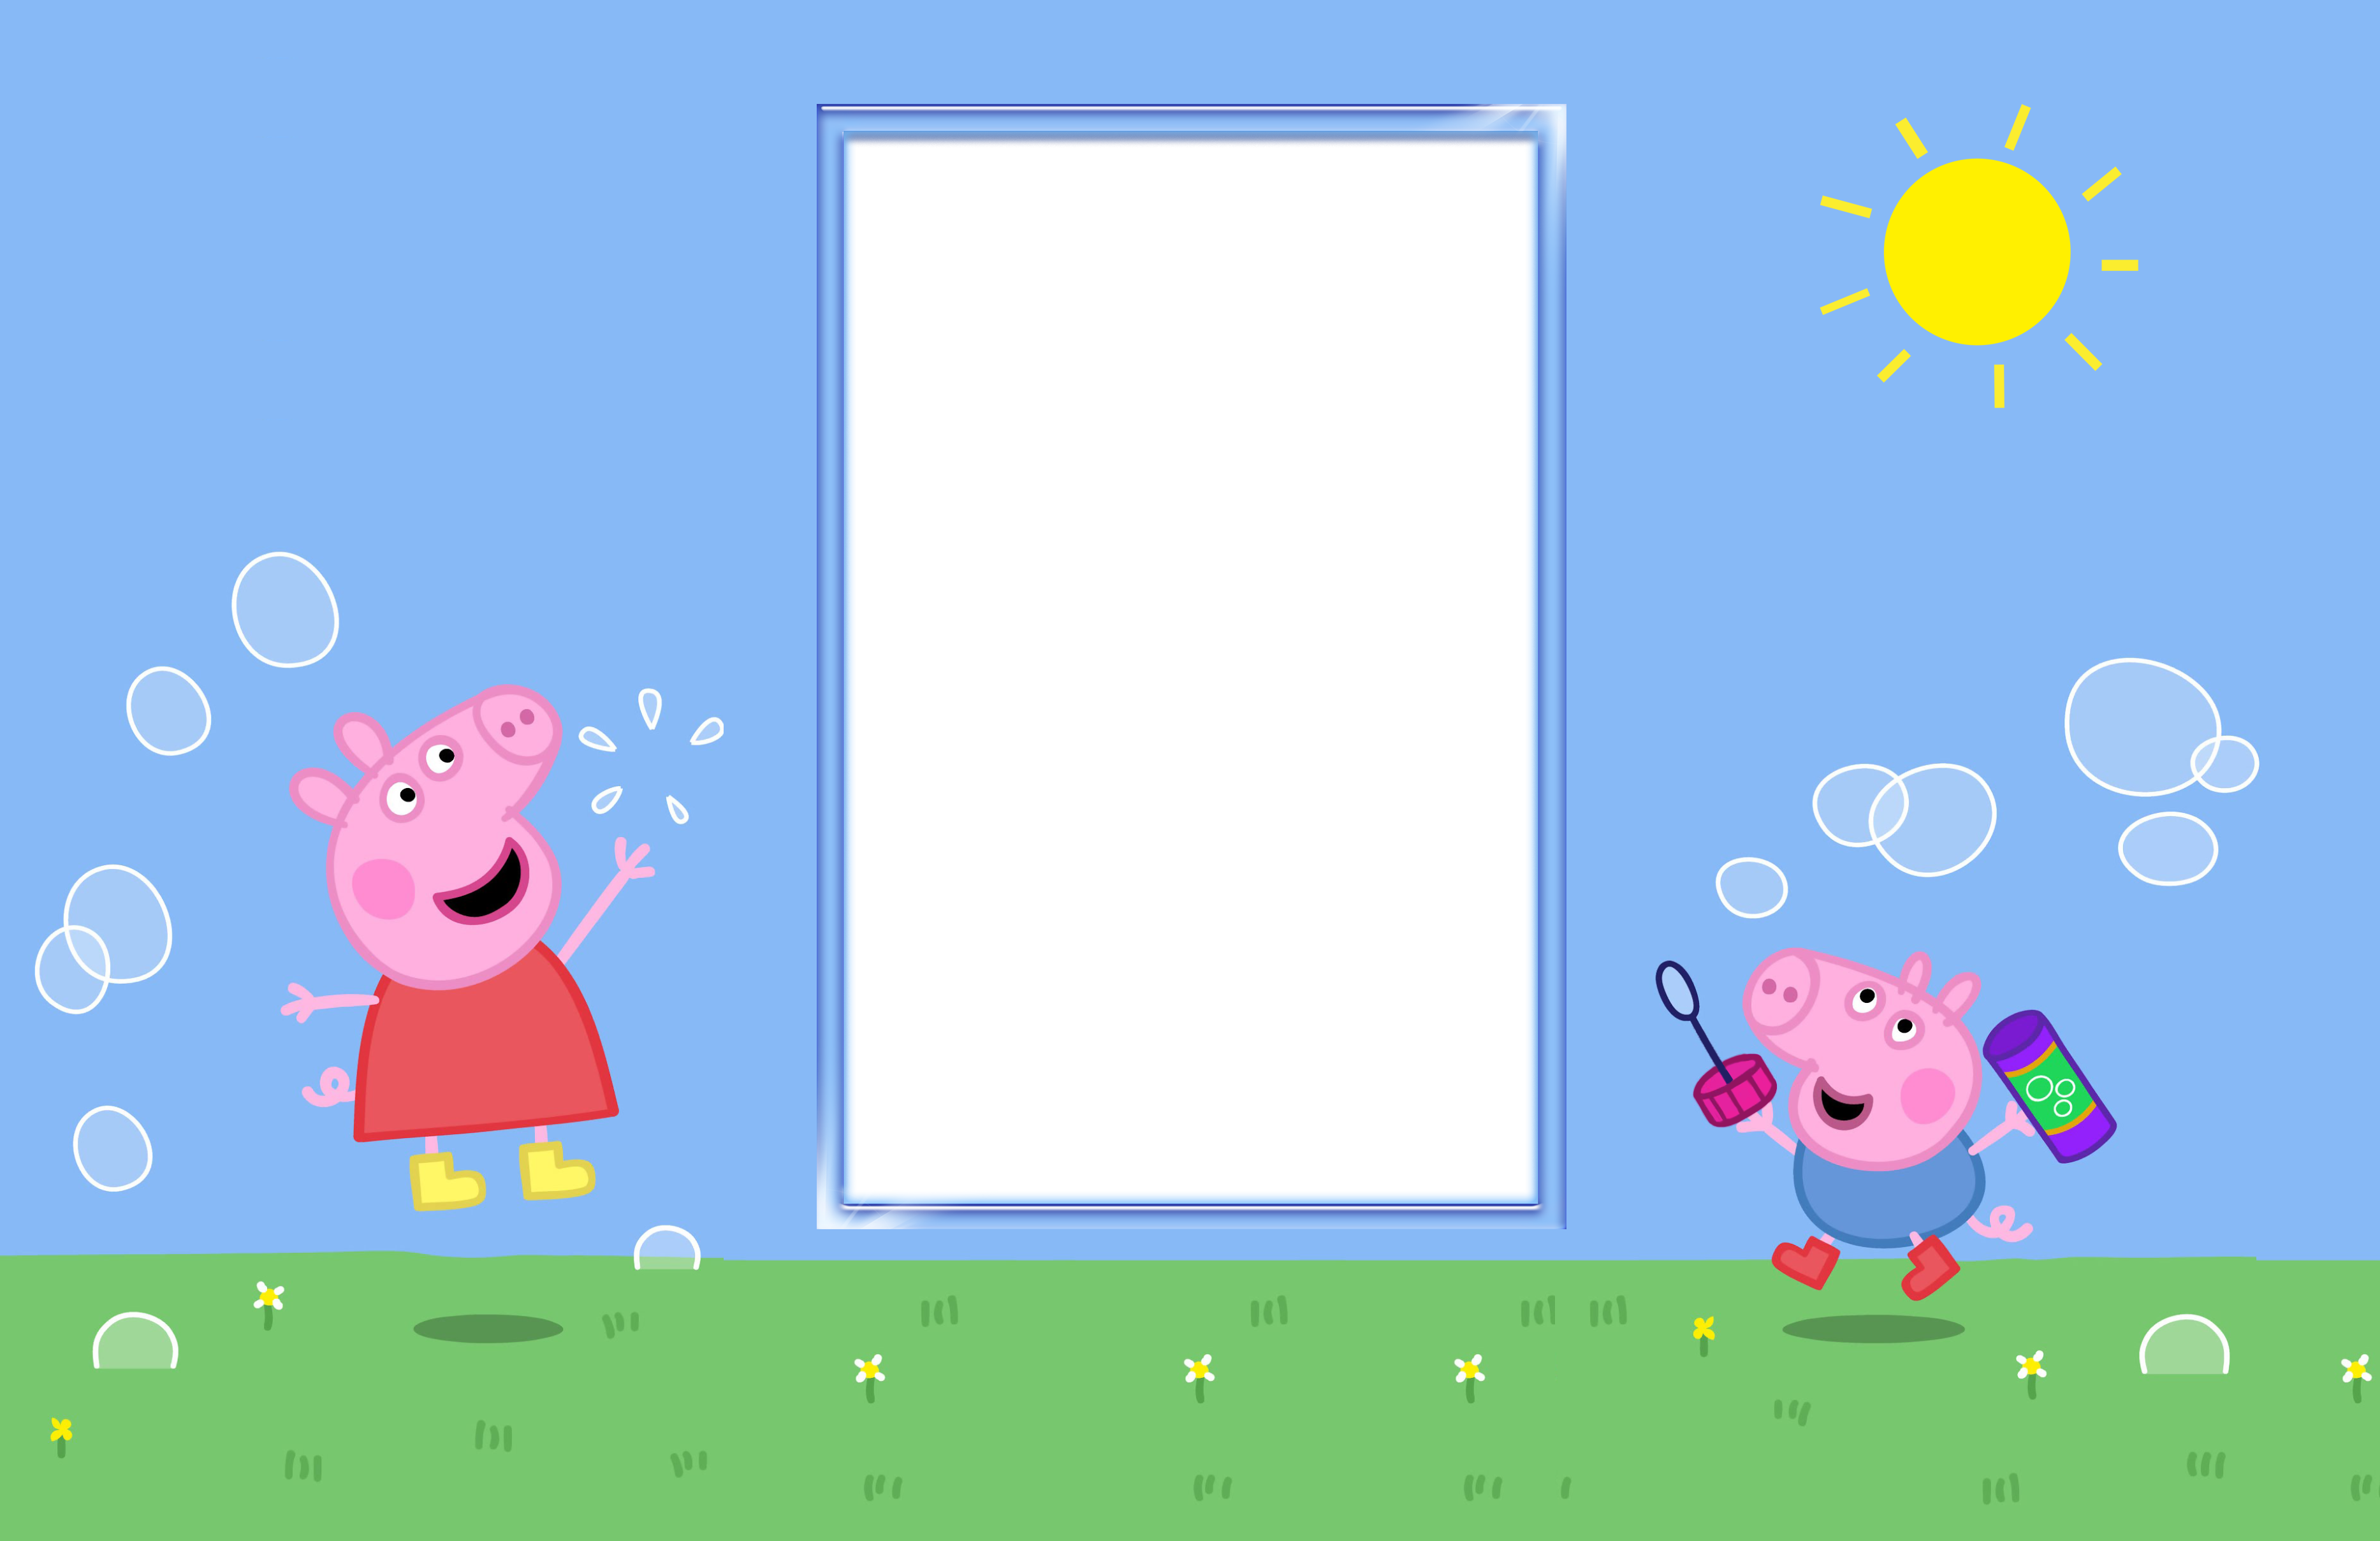 Pig halloween clipart graphic transparent library Peppa pig background Gallery graphic transparent library